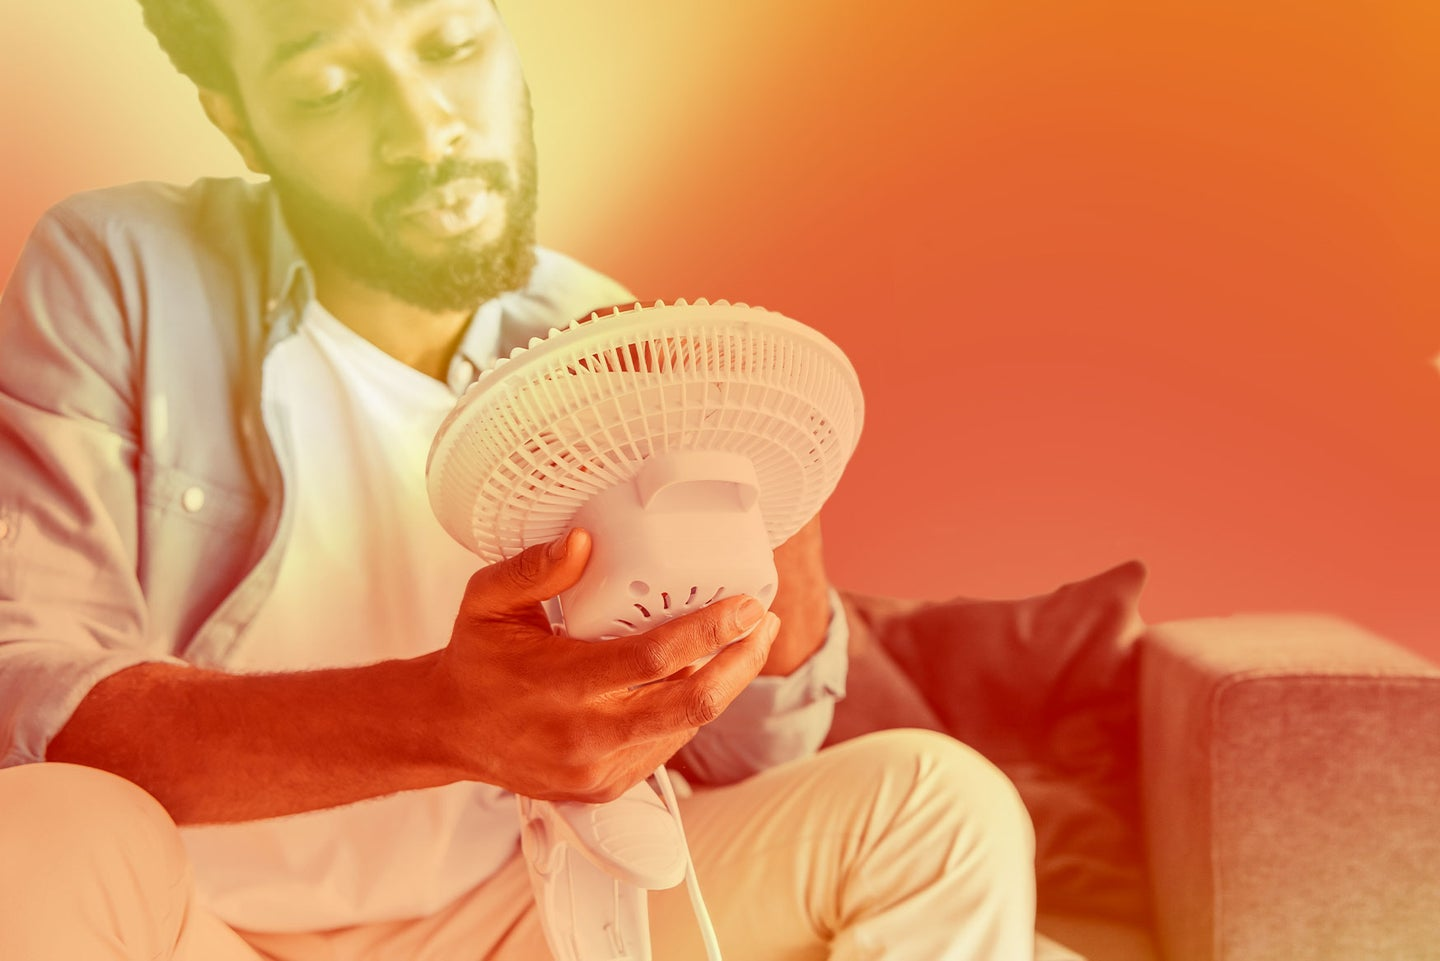 A man sitting and holding an electric fan in front of his face.